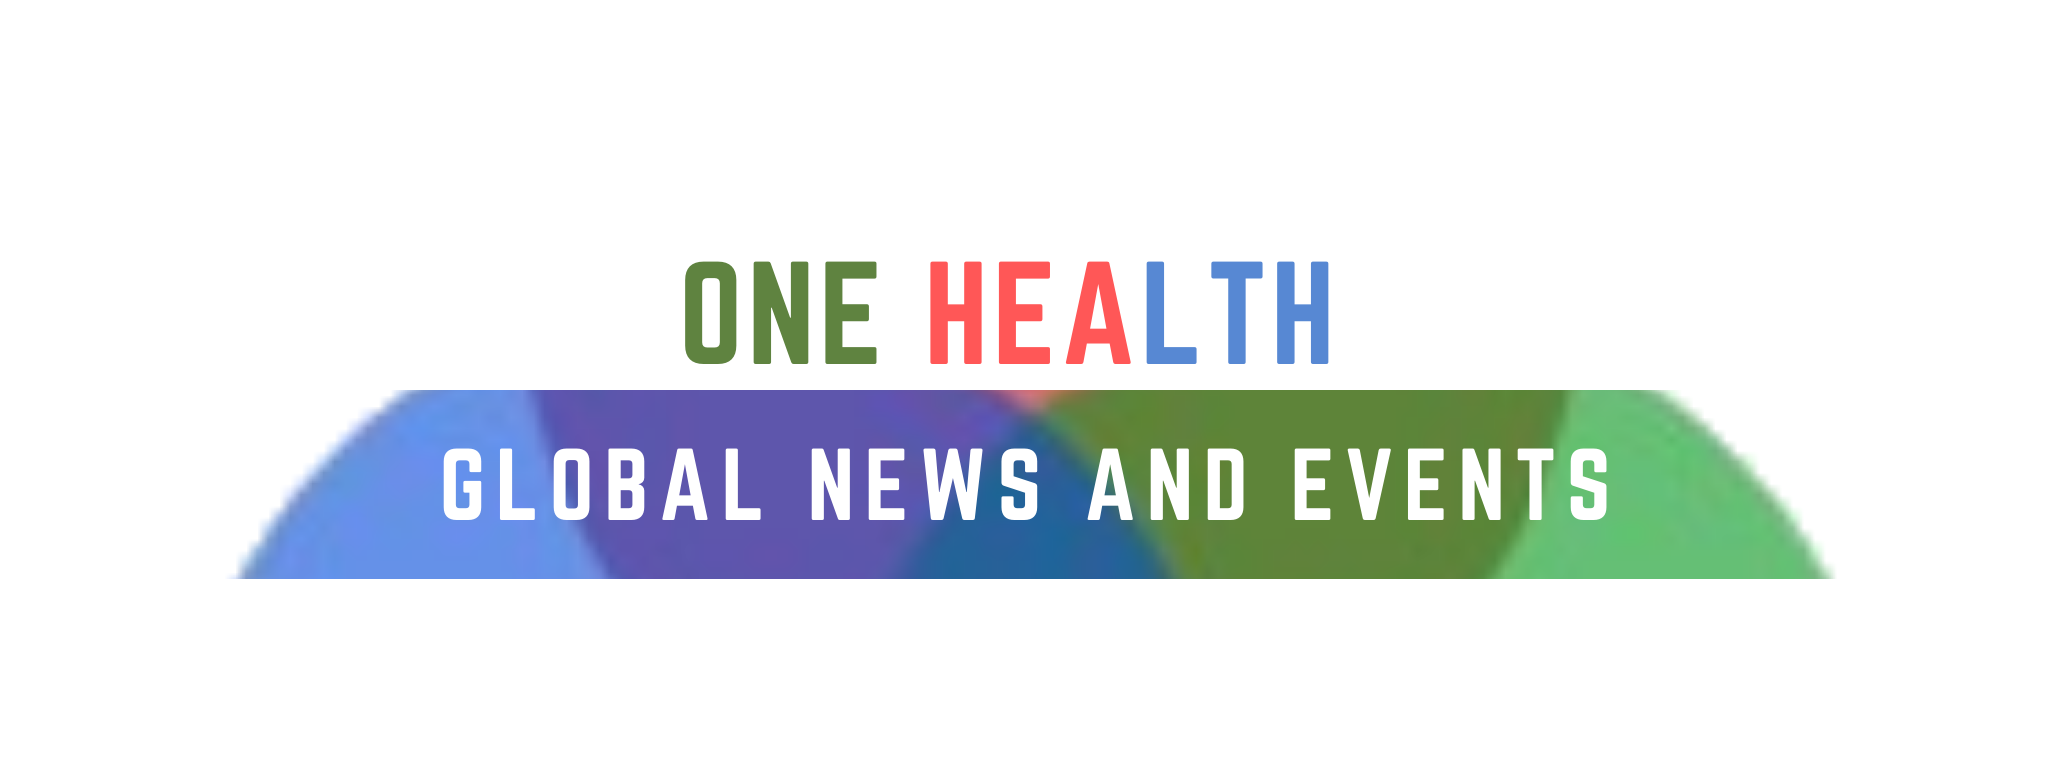 One Health Global News and Events